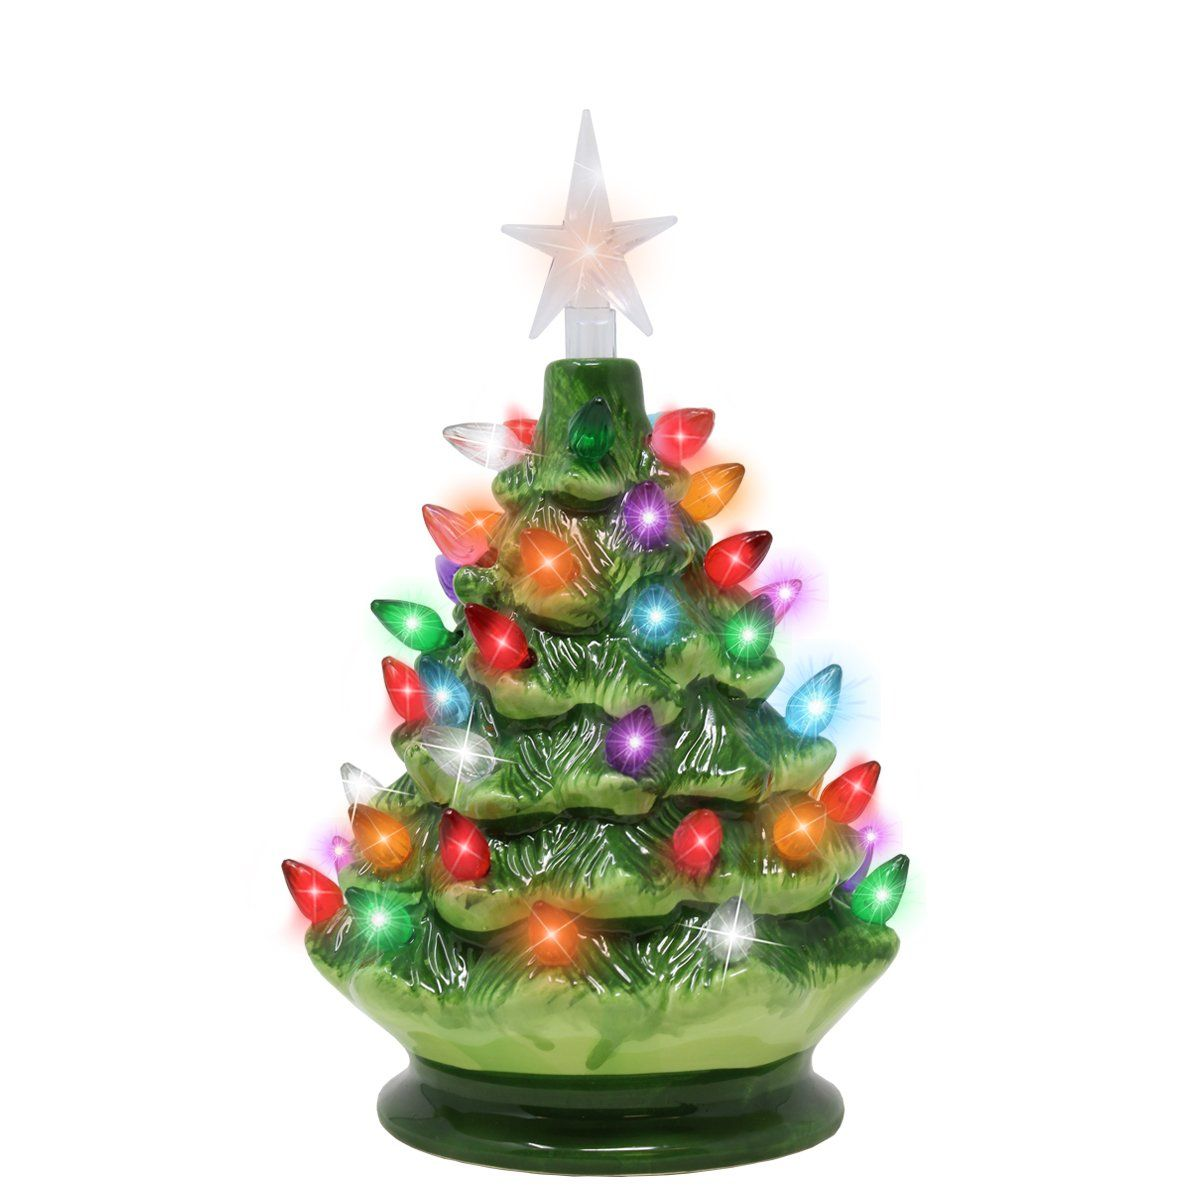 tabletop prelit ceramic christmas tree with led lights battery powered mini christmas tree decoration by joiedomi - Battery Powered Christmas Decorations